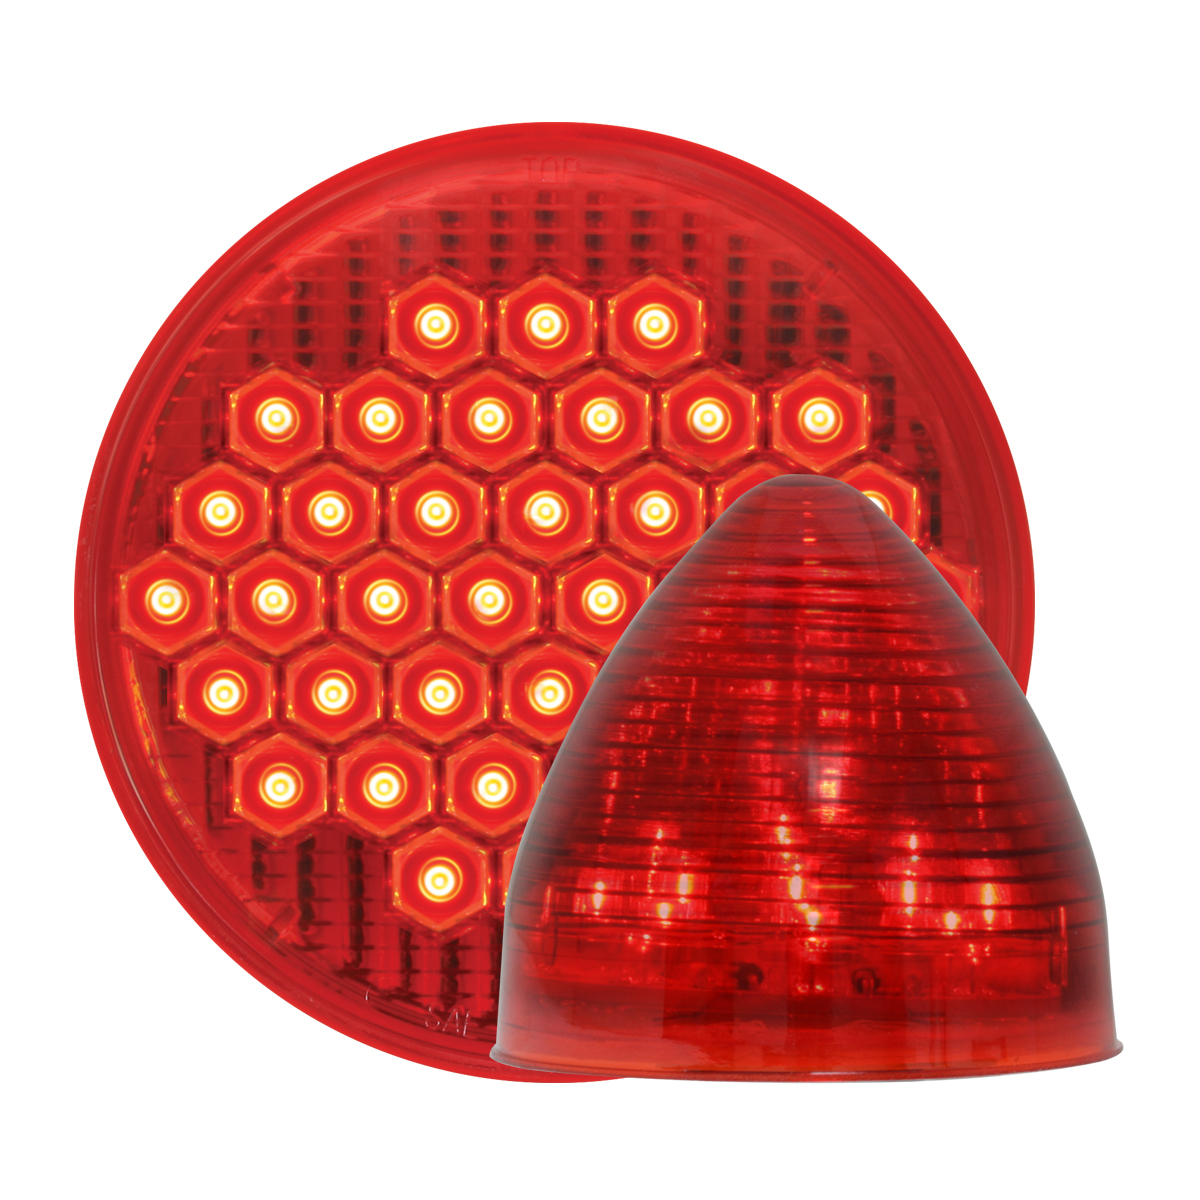 #87700/#79301 High Count LED Beehive - Red/Red